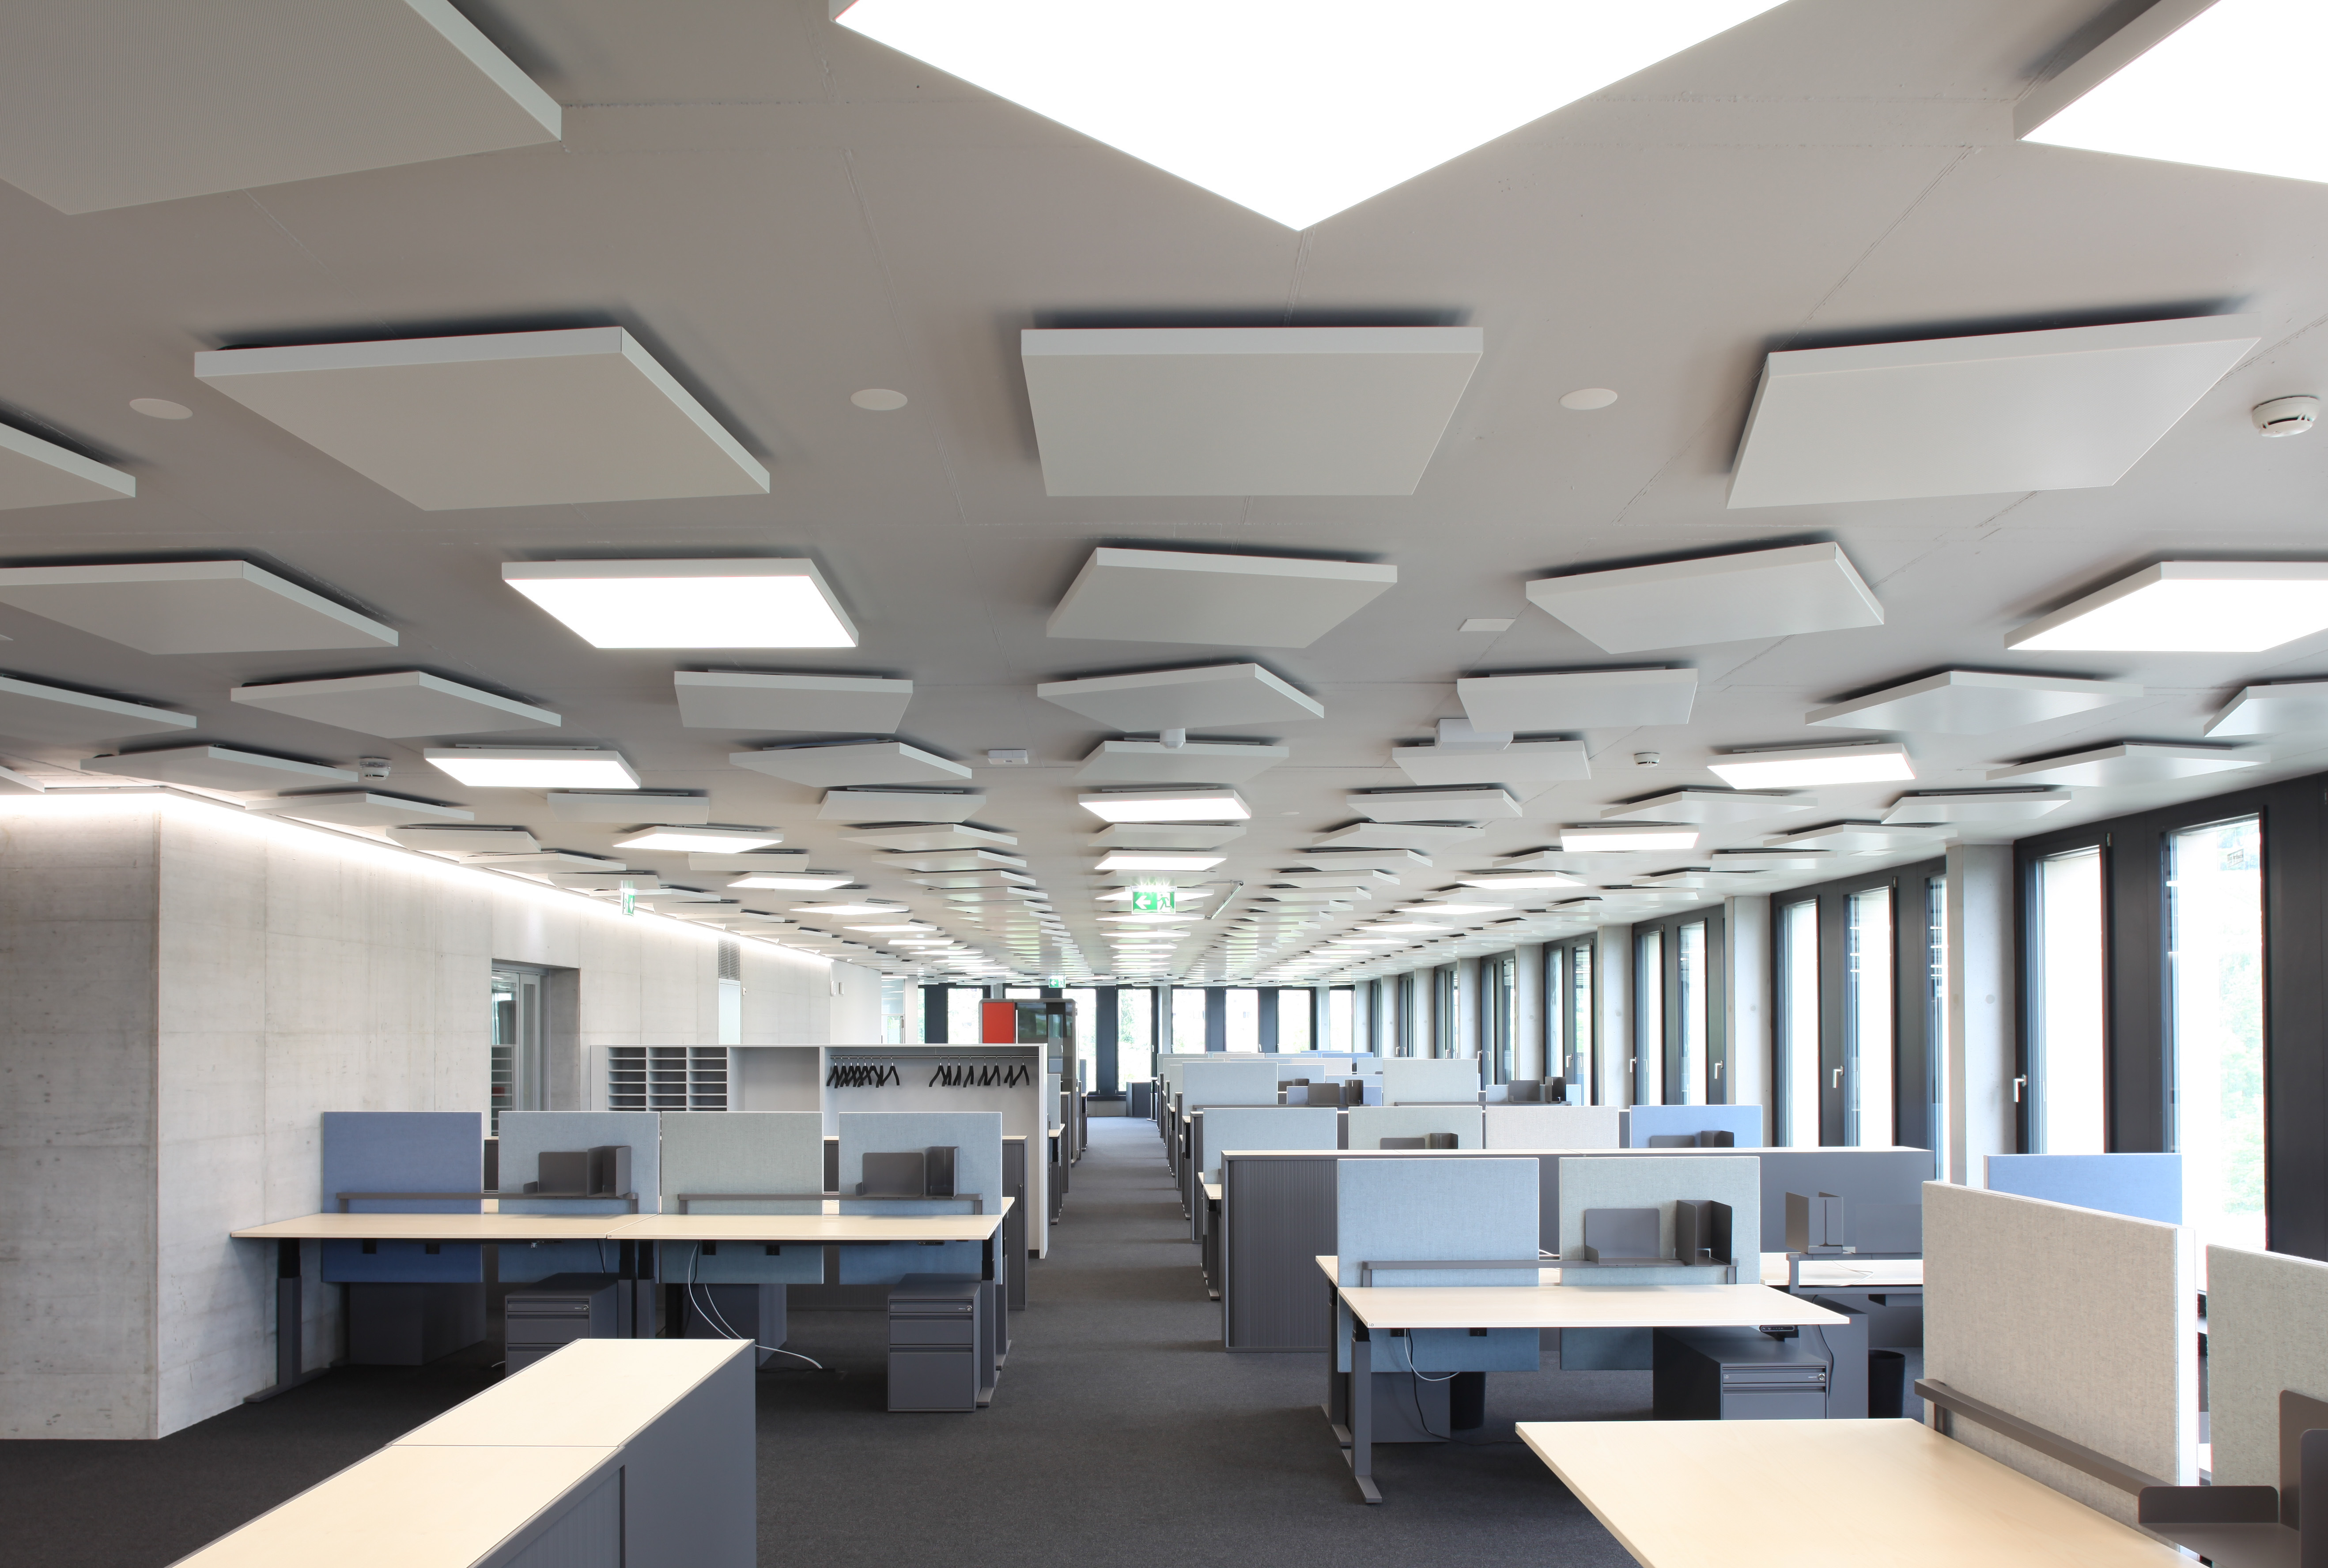 In the offices, the square Lumeo-Q illuminated surfaces ensure even  illumination and a pleasant ambient climate thanks to its thermal  conductivity.